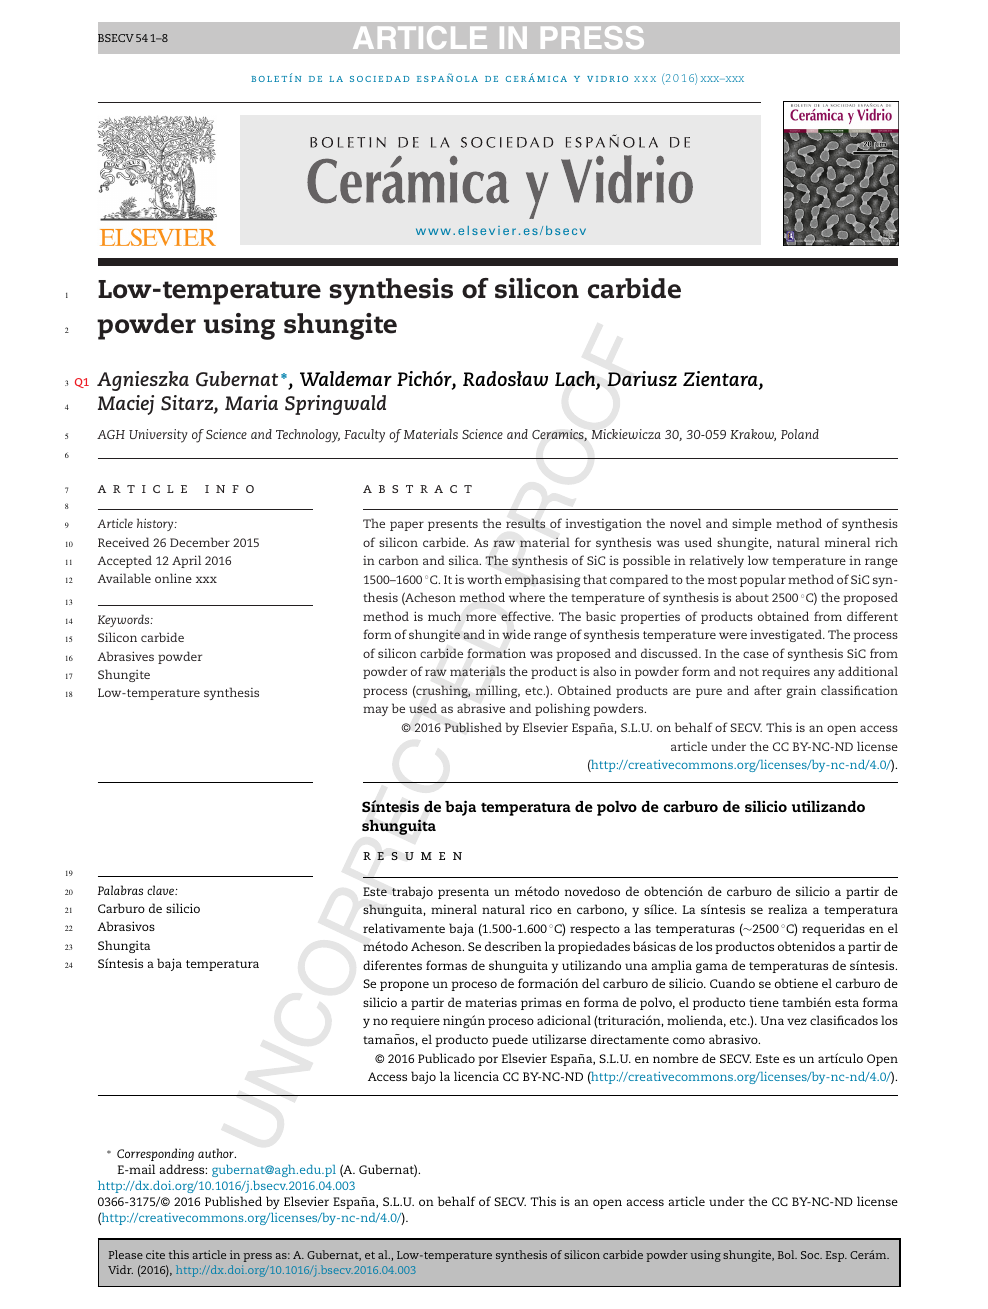 Low-temperature synthesis of silicon carbide powder using